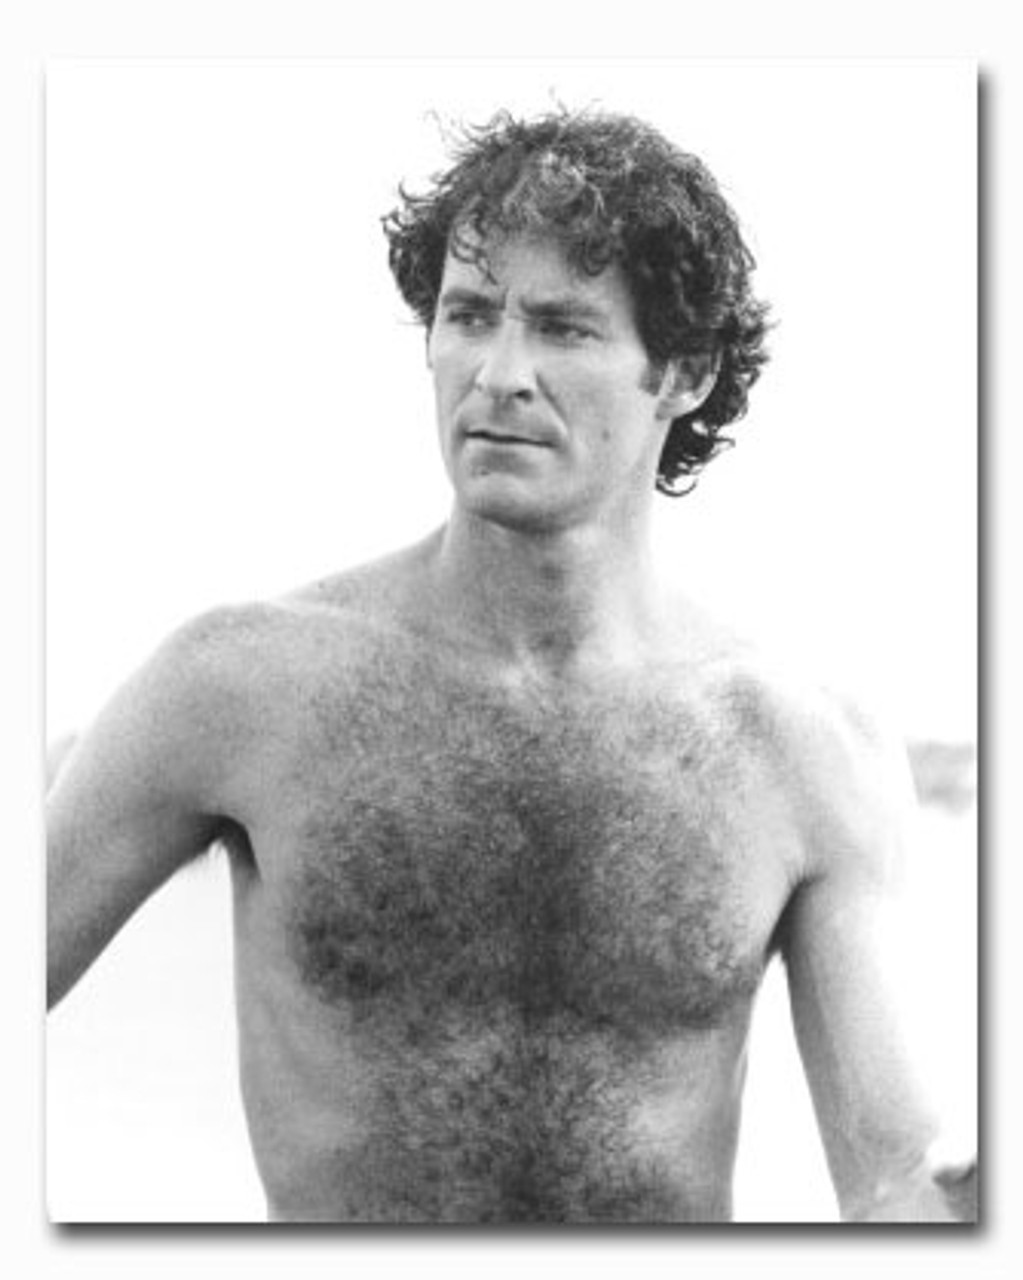 Ss2422667 Movie Picture Of Kevin Kline Buy Celebrity Photos And Posters At Starstills Com